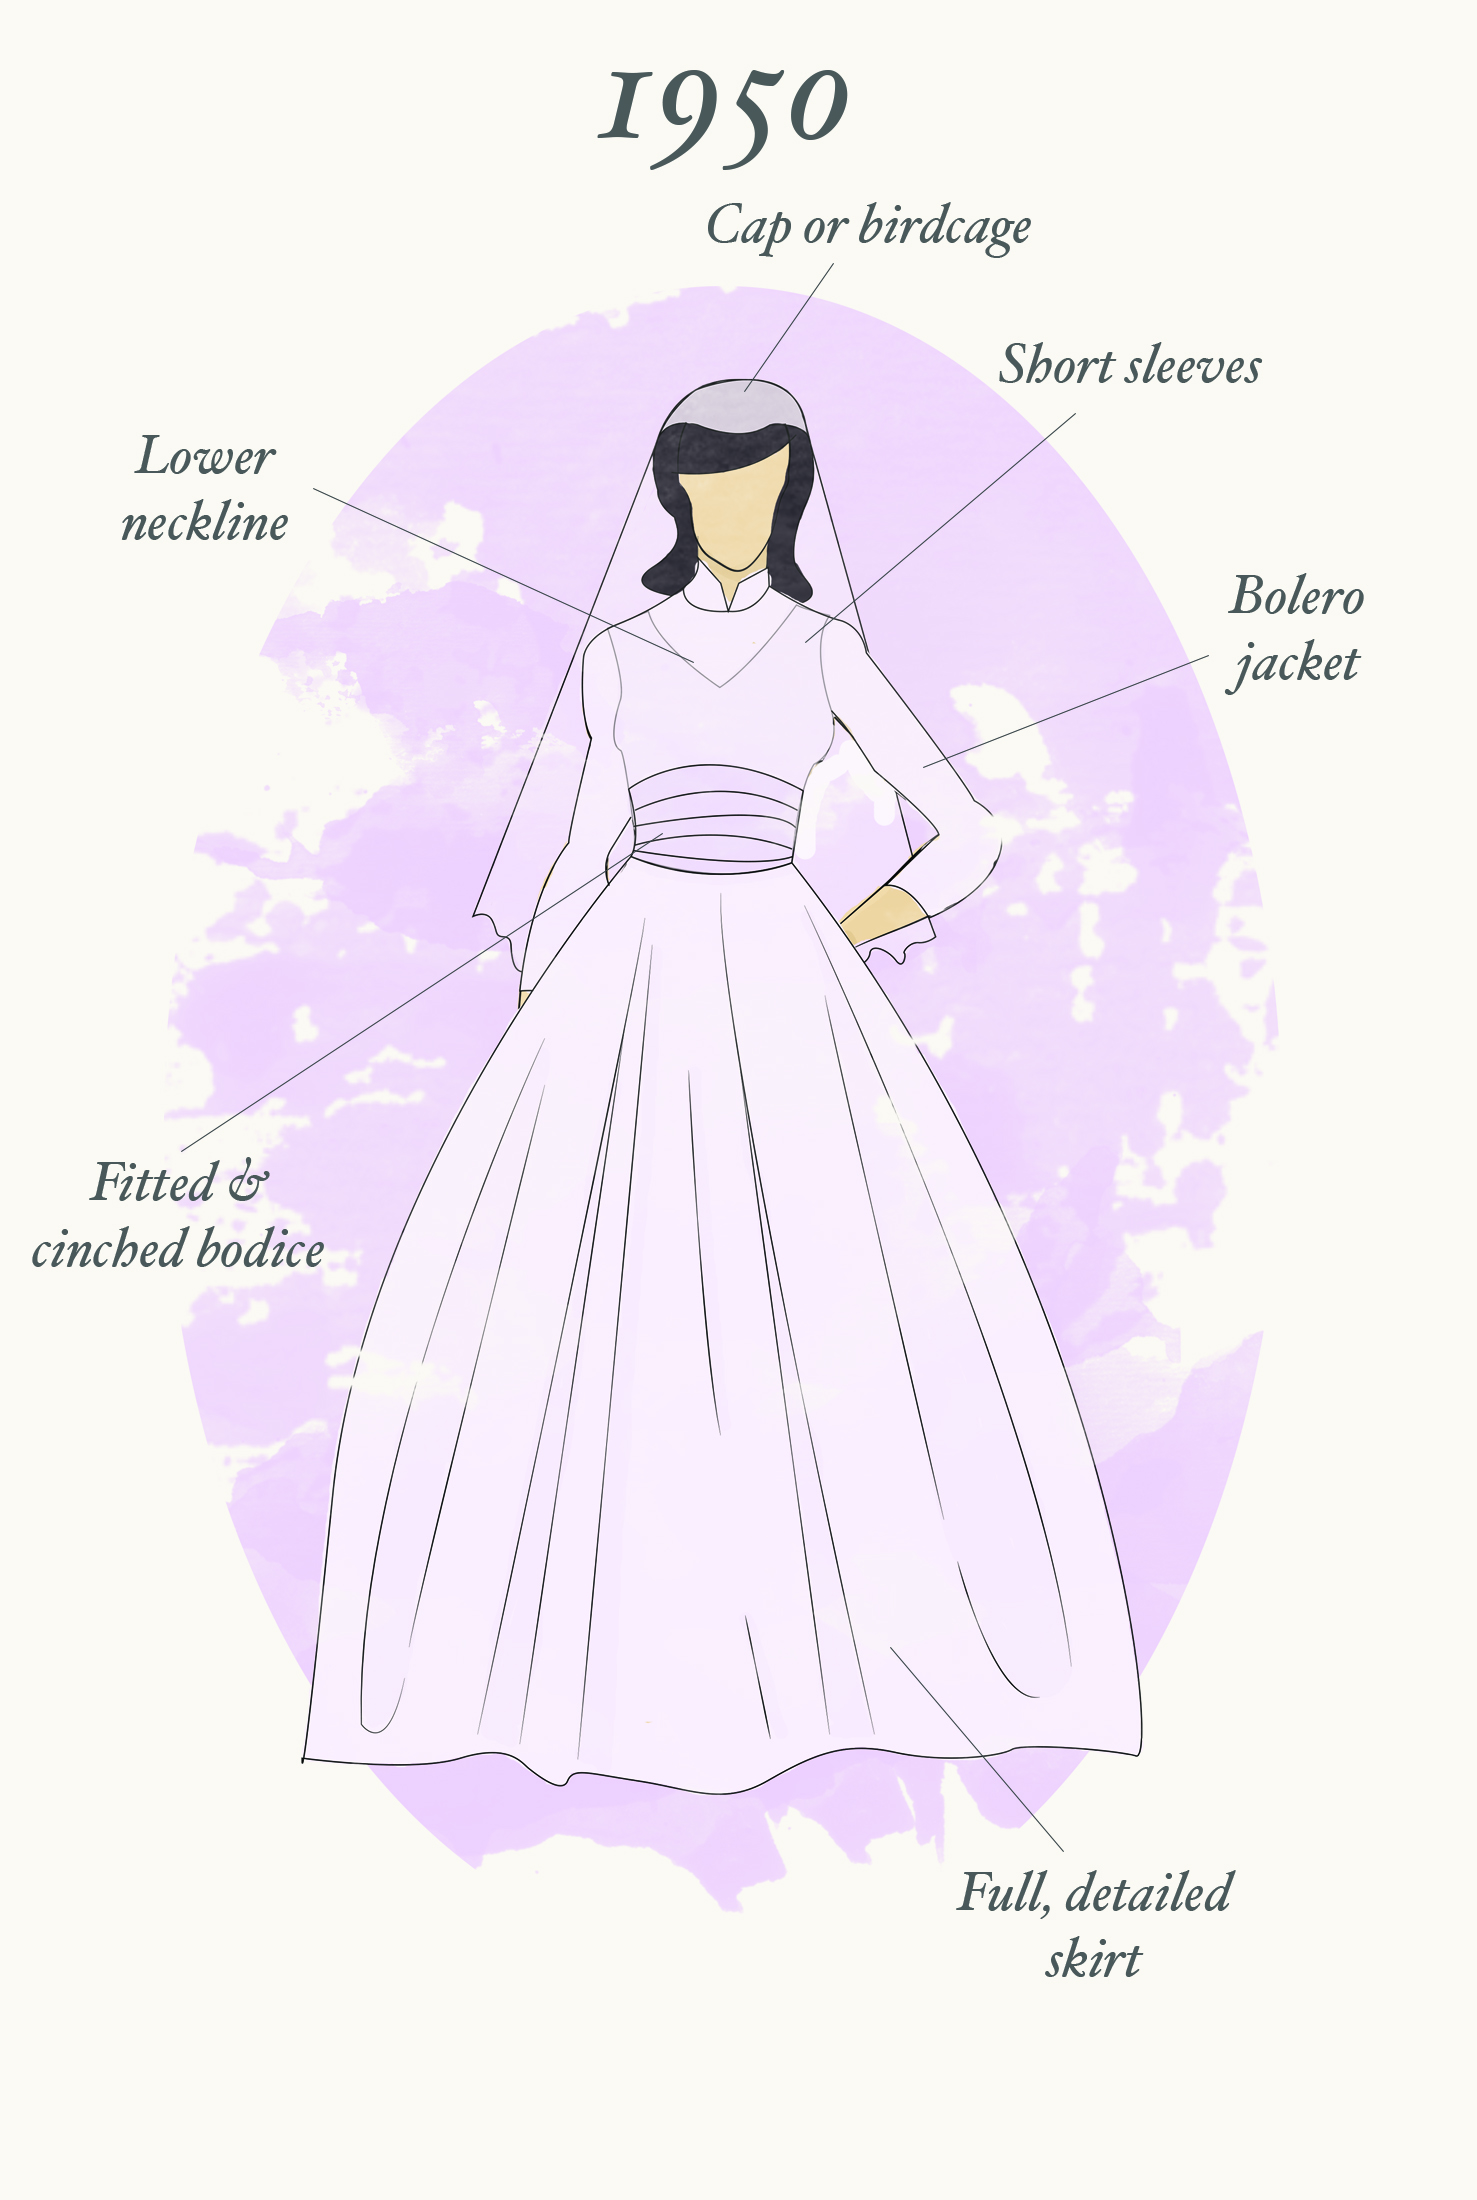 weddings through the decades 1900 1950 new orleans wedding planners Pink Ladies Jacket for Girls 1950 wedding dress